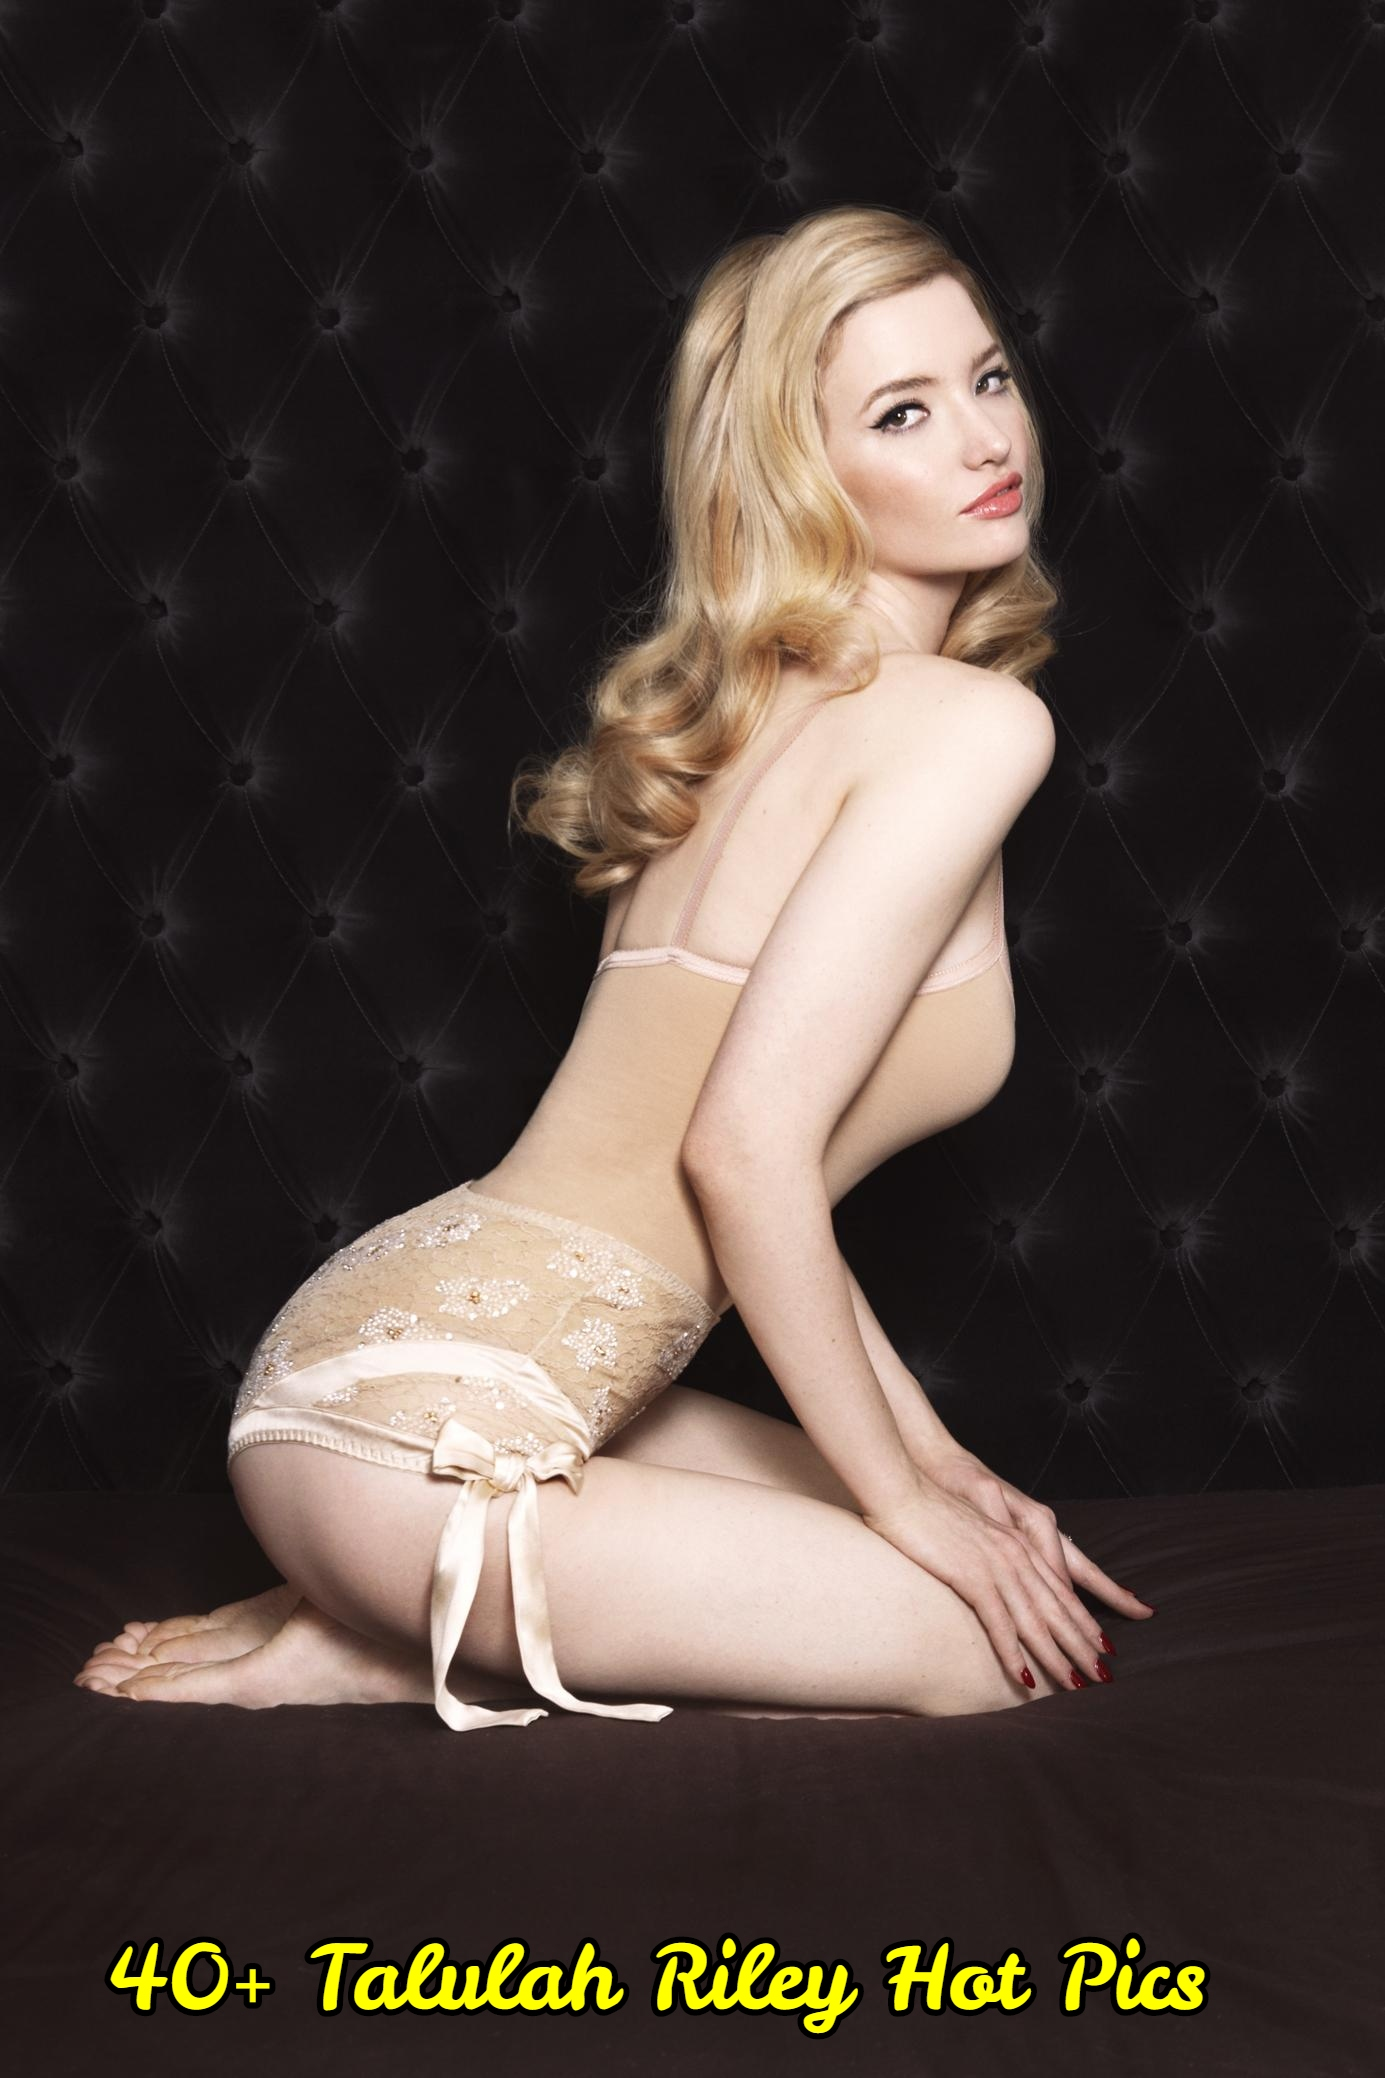 41 Sexiest Pictures Of Talulah Riley   CBG